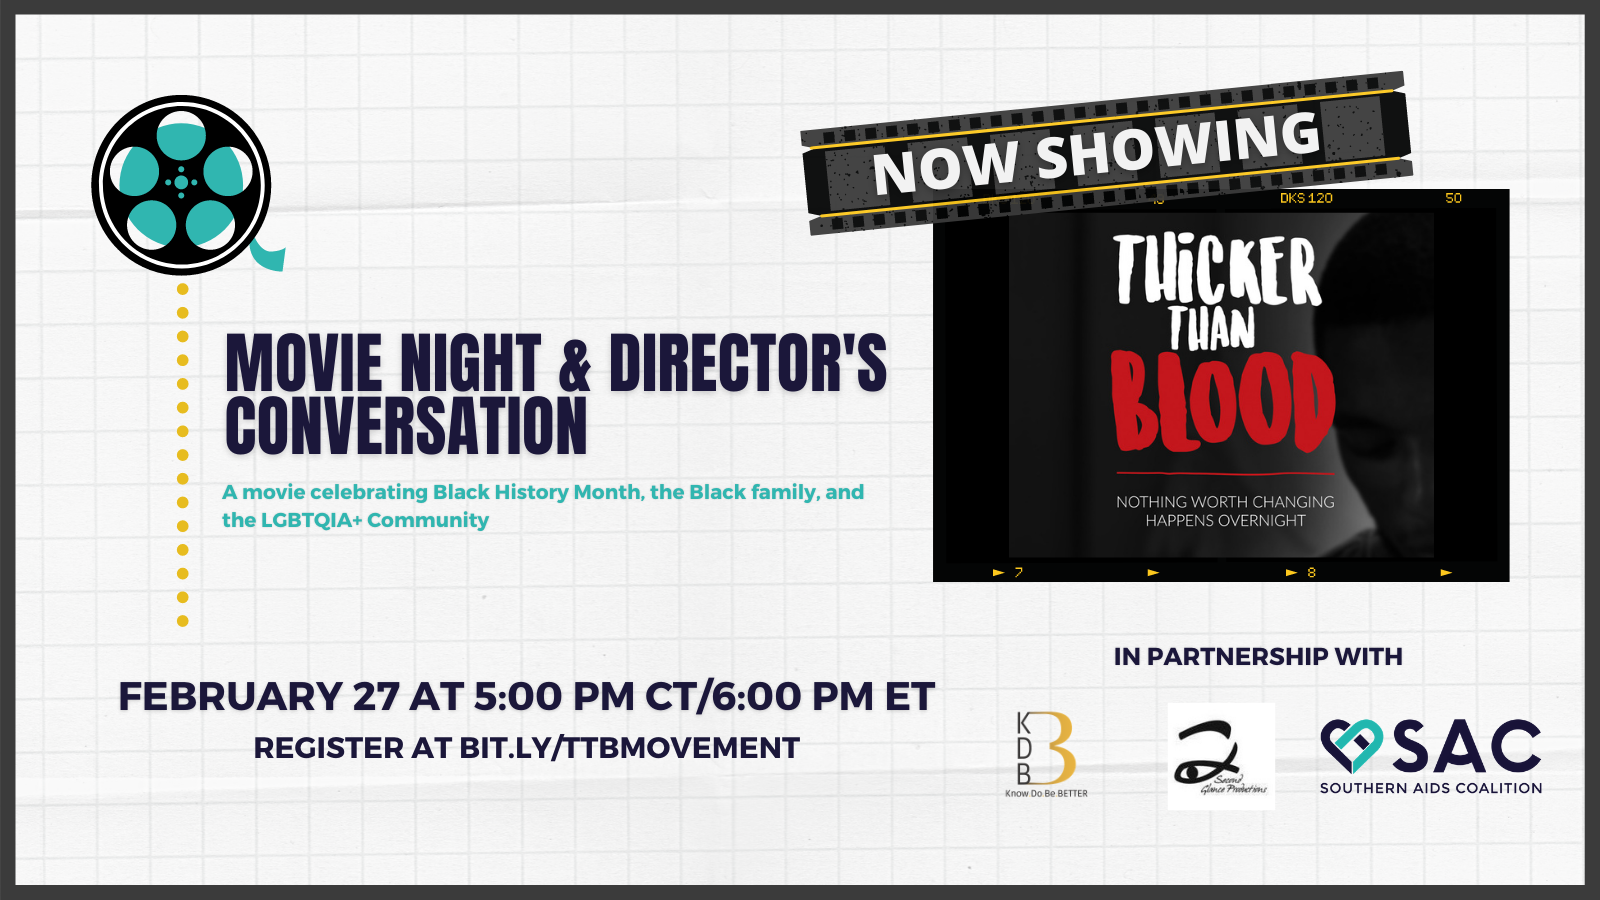 Movie Night and director's conversation flyer for thicker than blood screening on february twenty-seventh at five central and six eastern